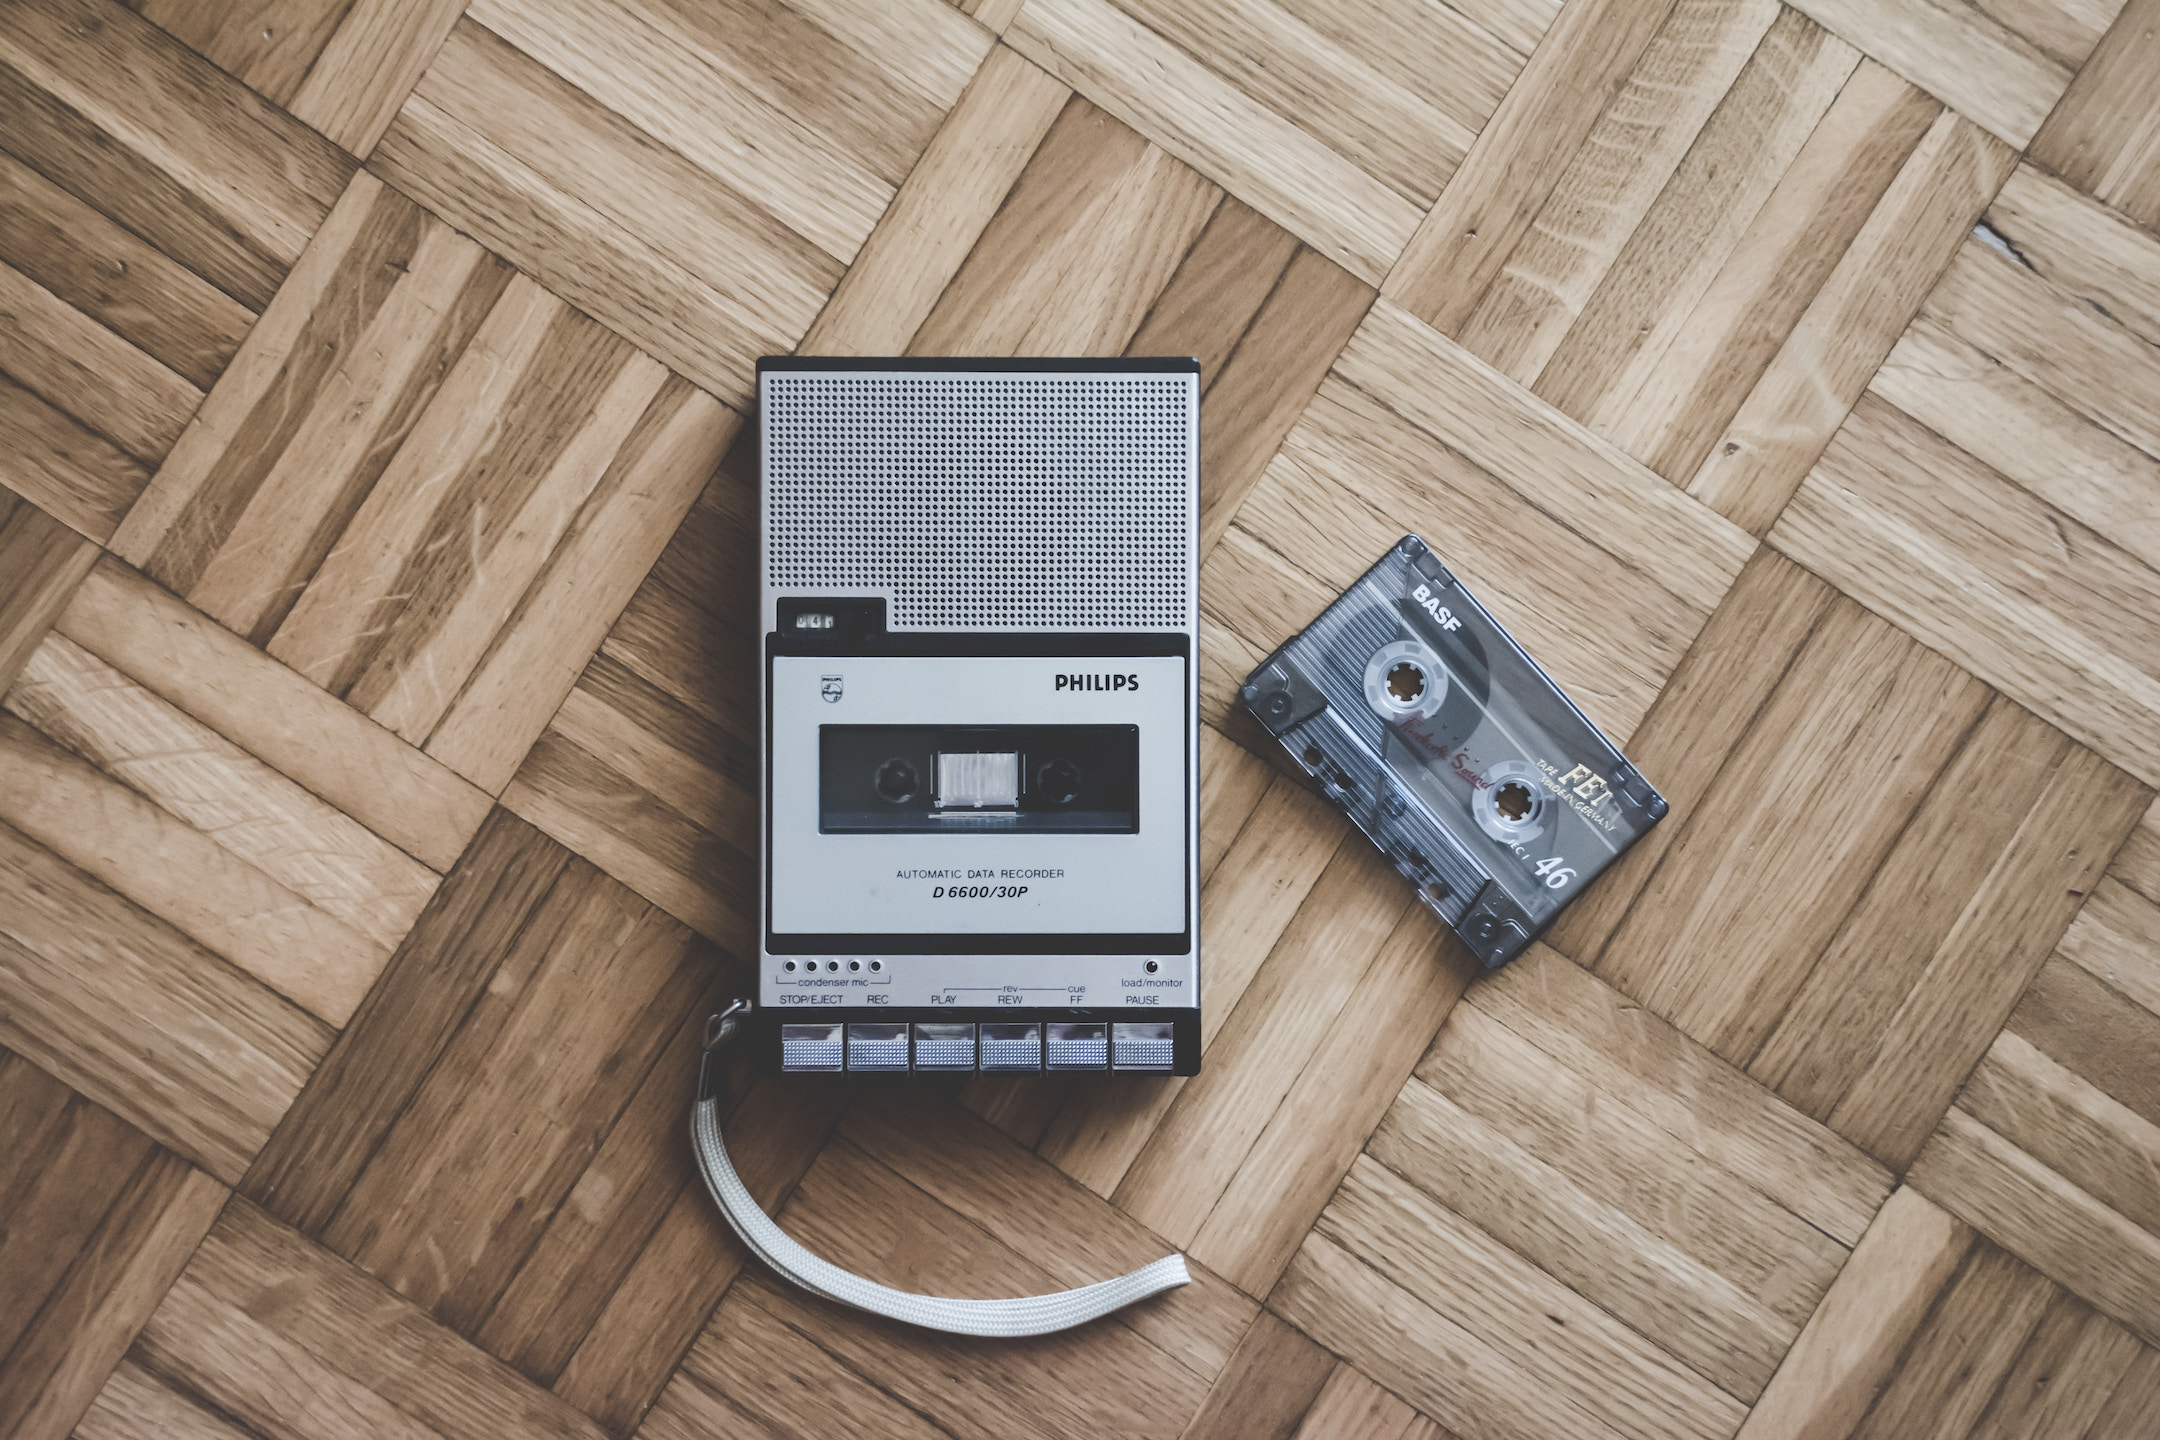 Cassette tape and player